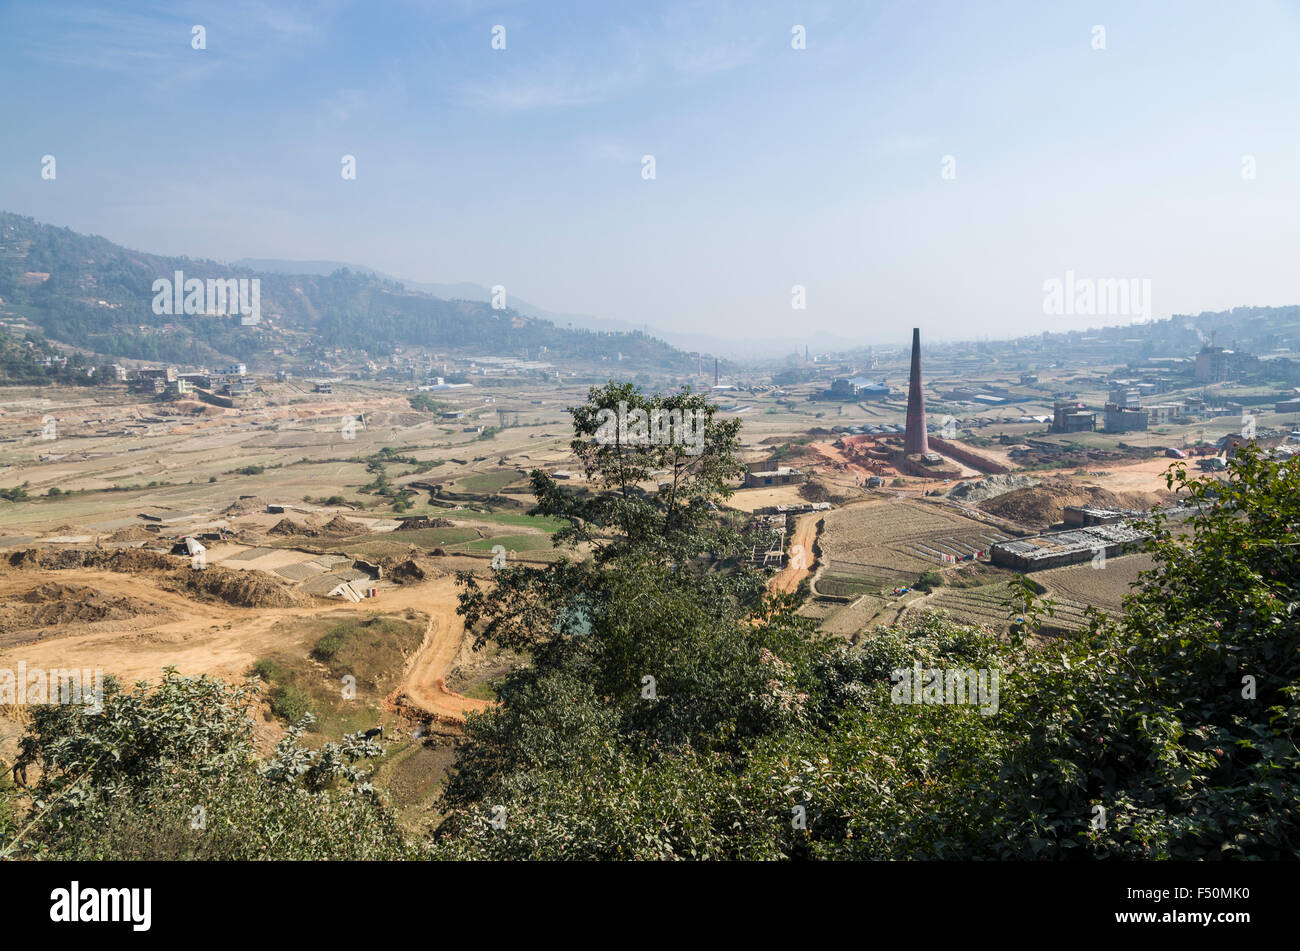 Brick factories located west of Kathmandu - Stock Image